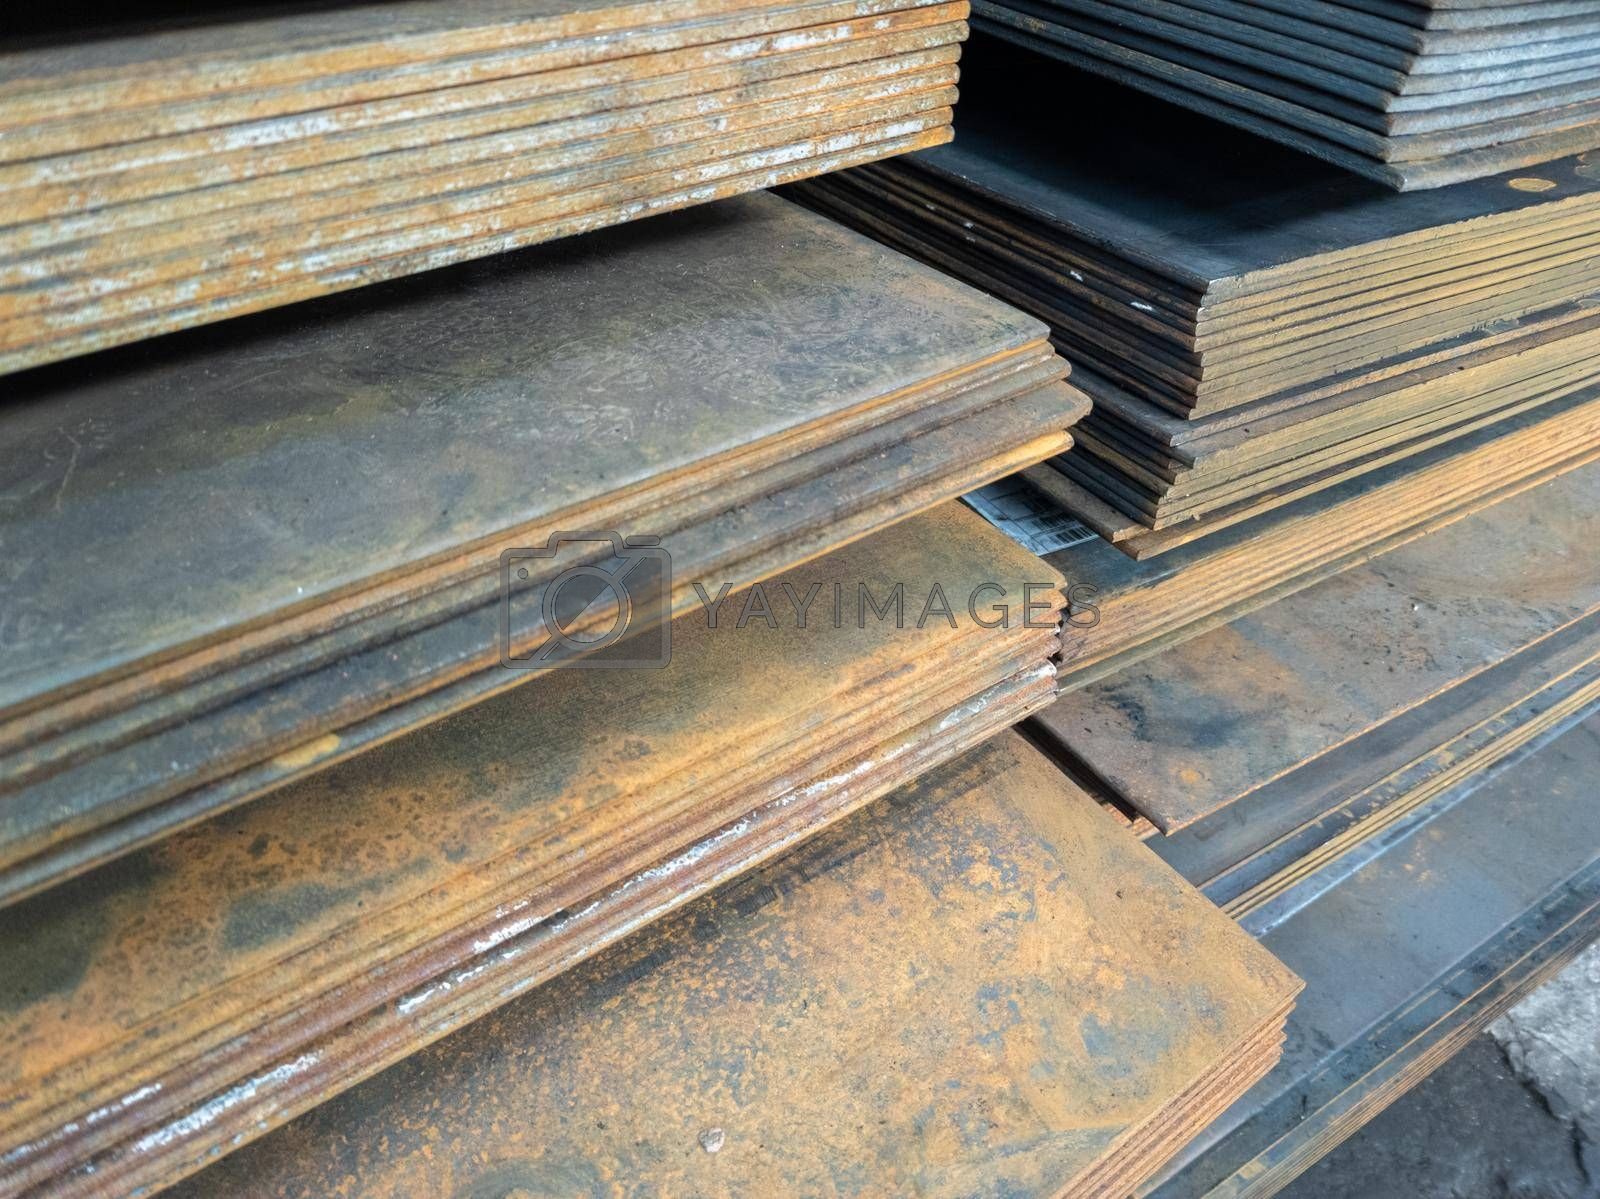 stacks of thick rusted flat metal sheets - close-up with selective focus